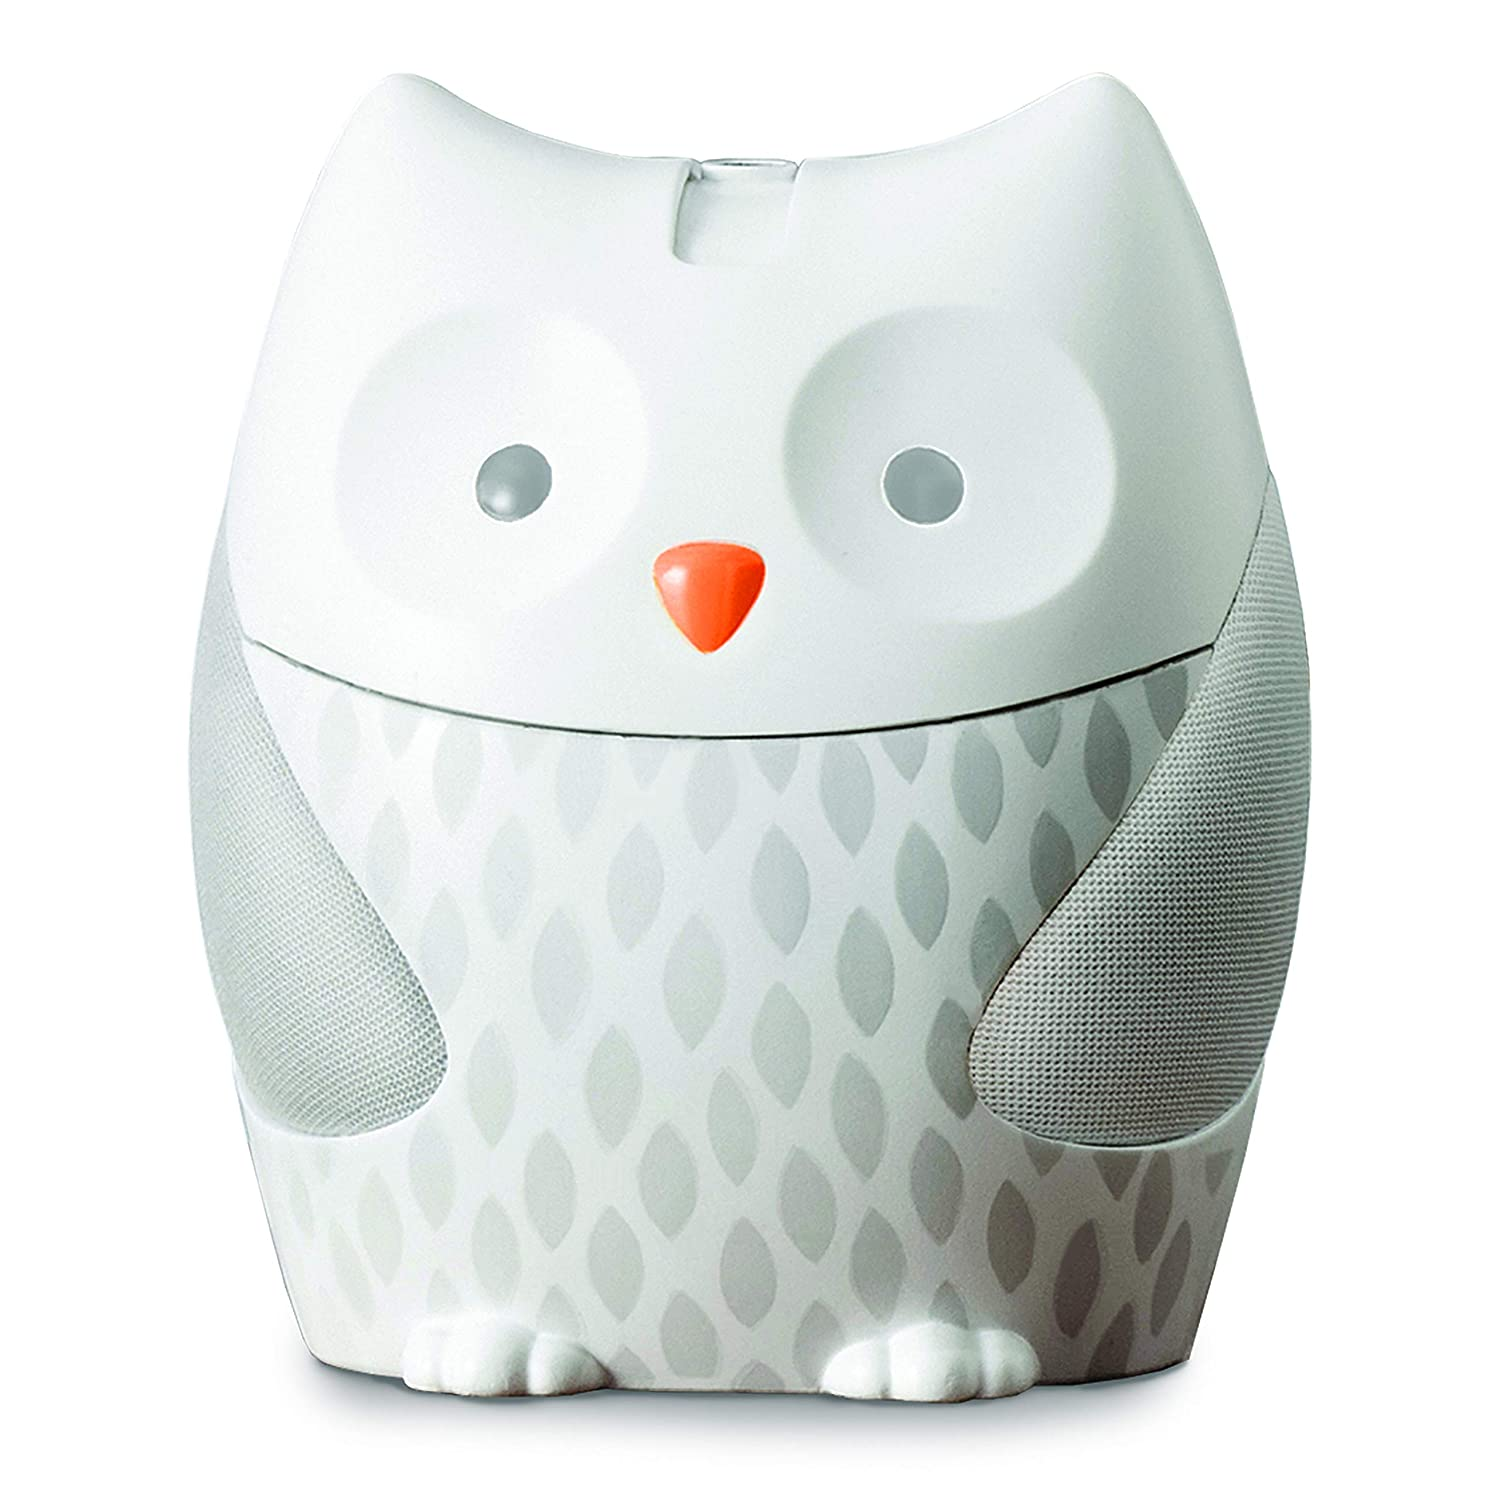 Skip Hop Stroll & Go Portable Baby Soother and Sound Machine, Owl 186025